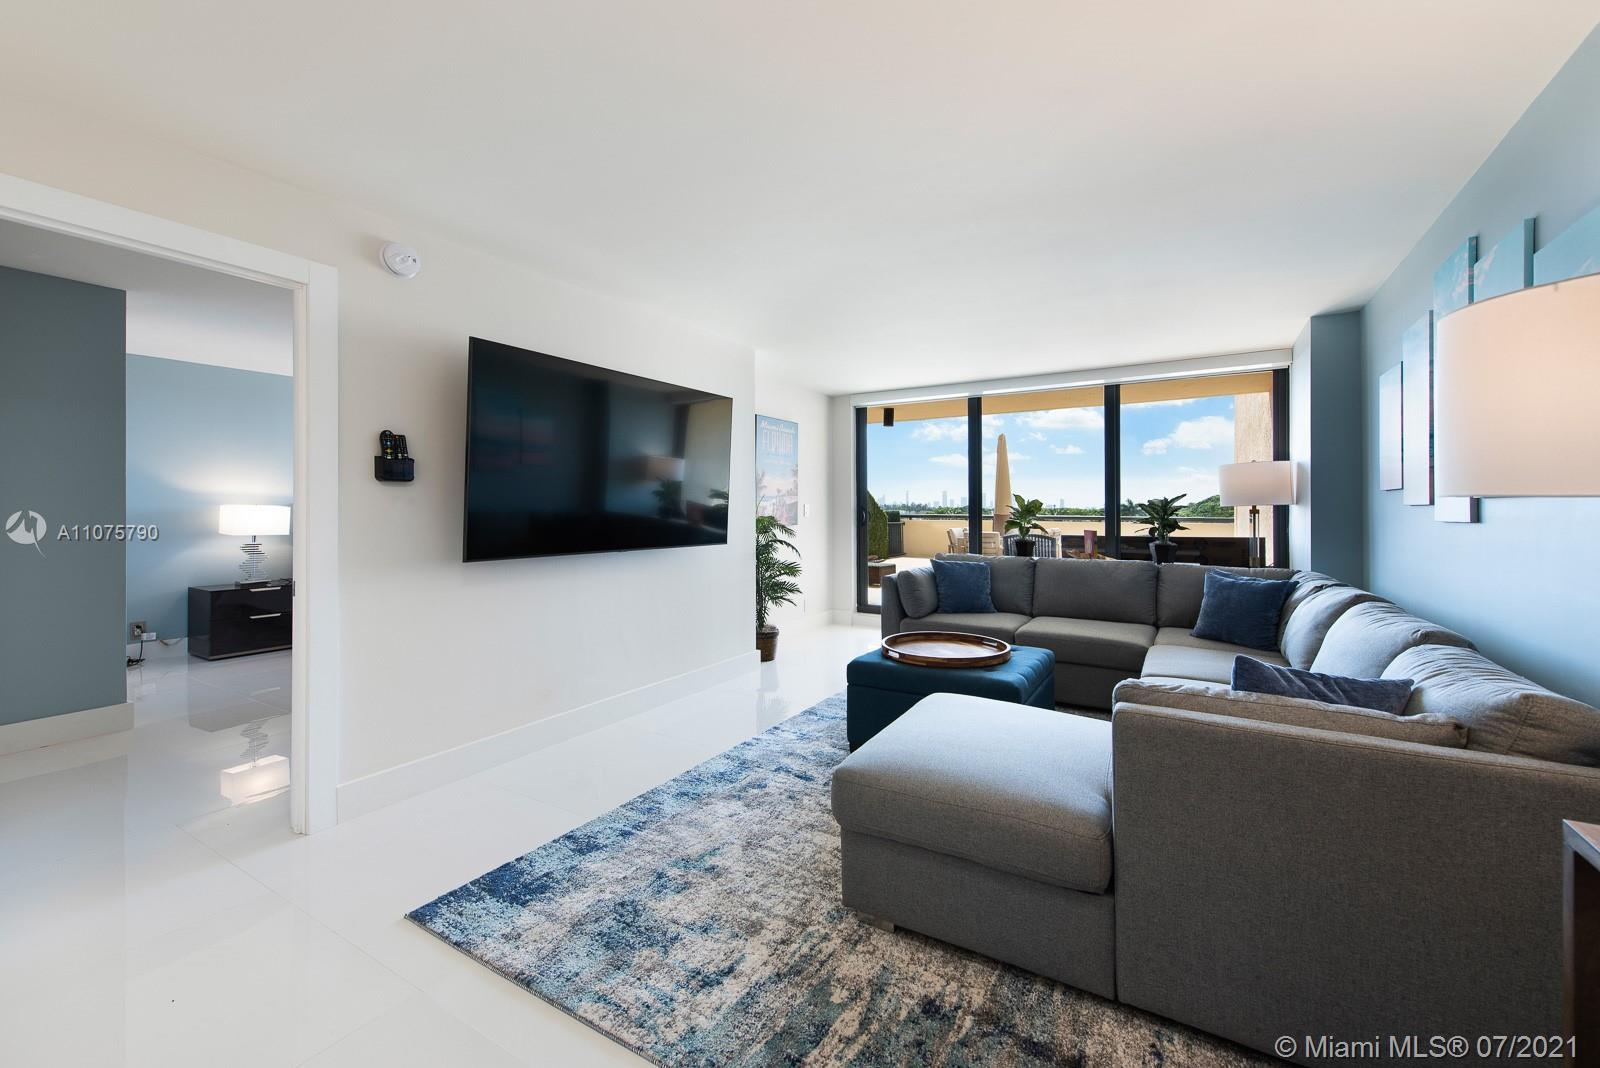 Exquisitely renovated 1 bedroom, 2 bathroom unit in the best area of Miami Beach.  Located on the on